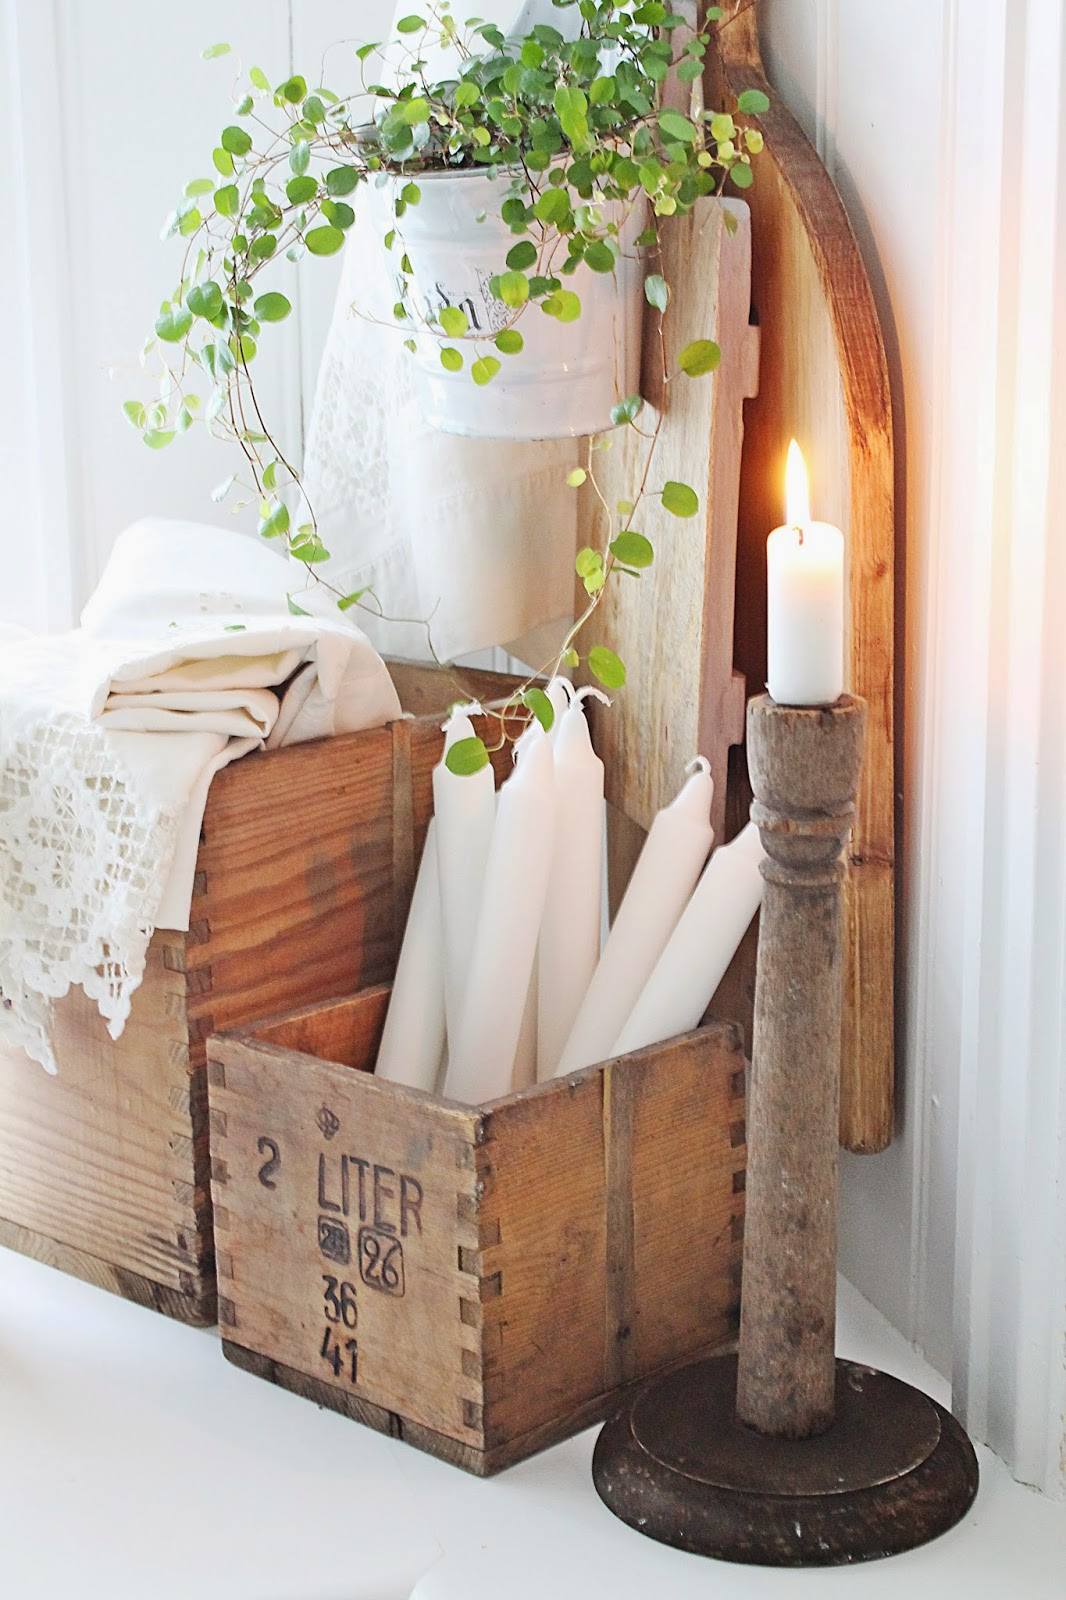 13 Creative DIY Crate Crafts To Take On -usefuldiyprojects (5)